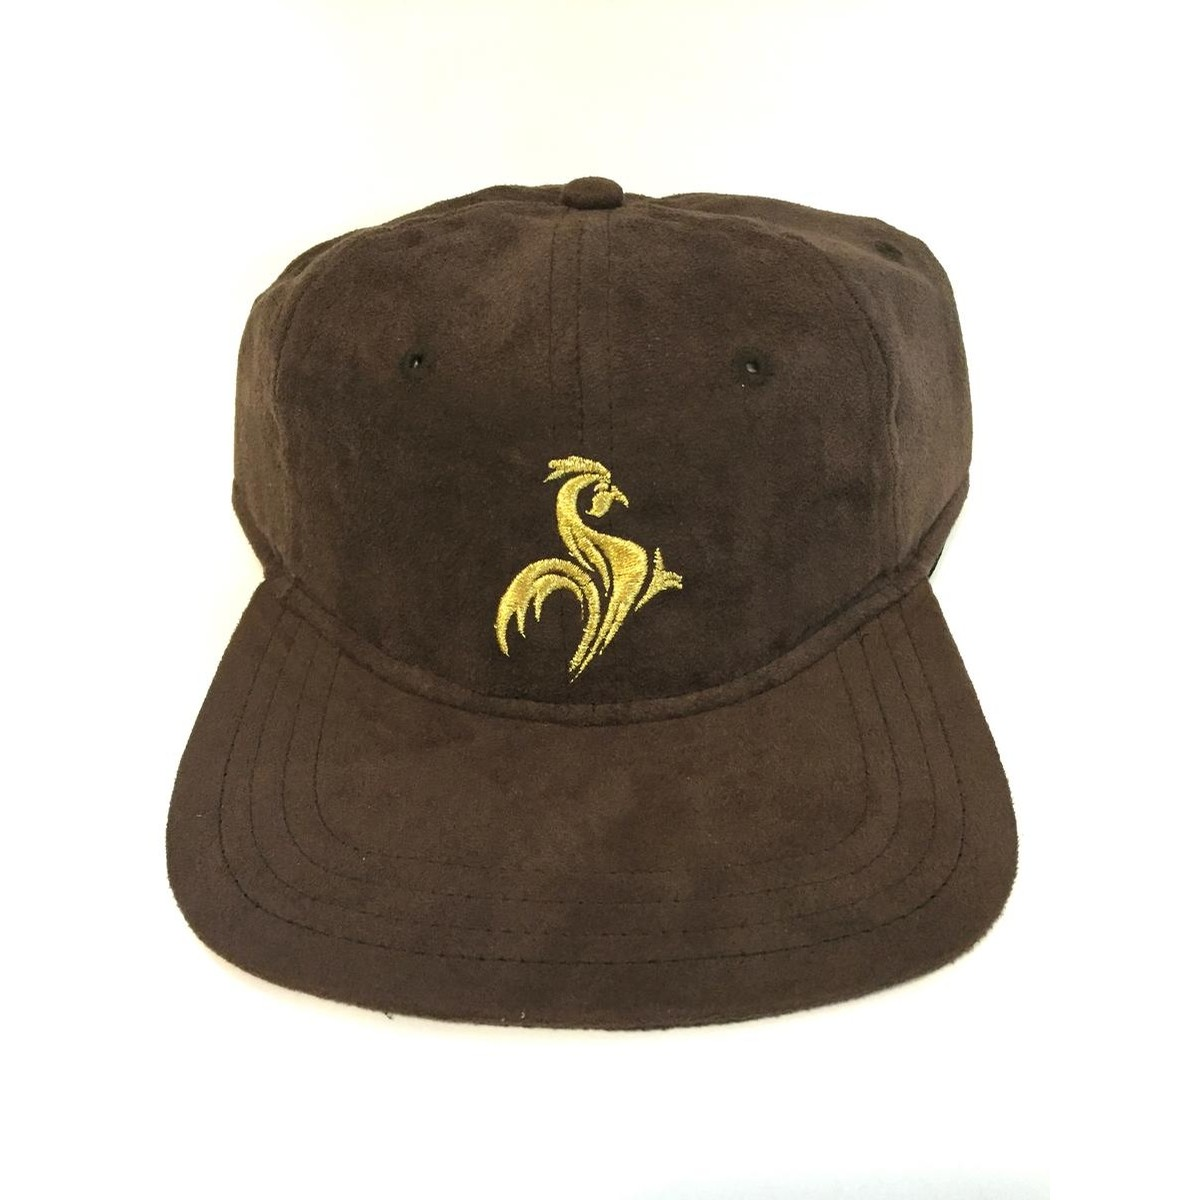 Fighting Hen Six Panel Strap Back Cap (Brown Suede)